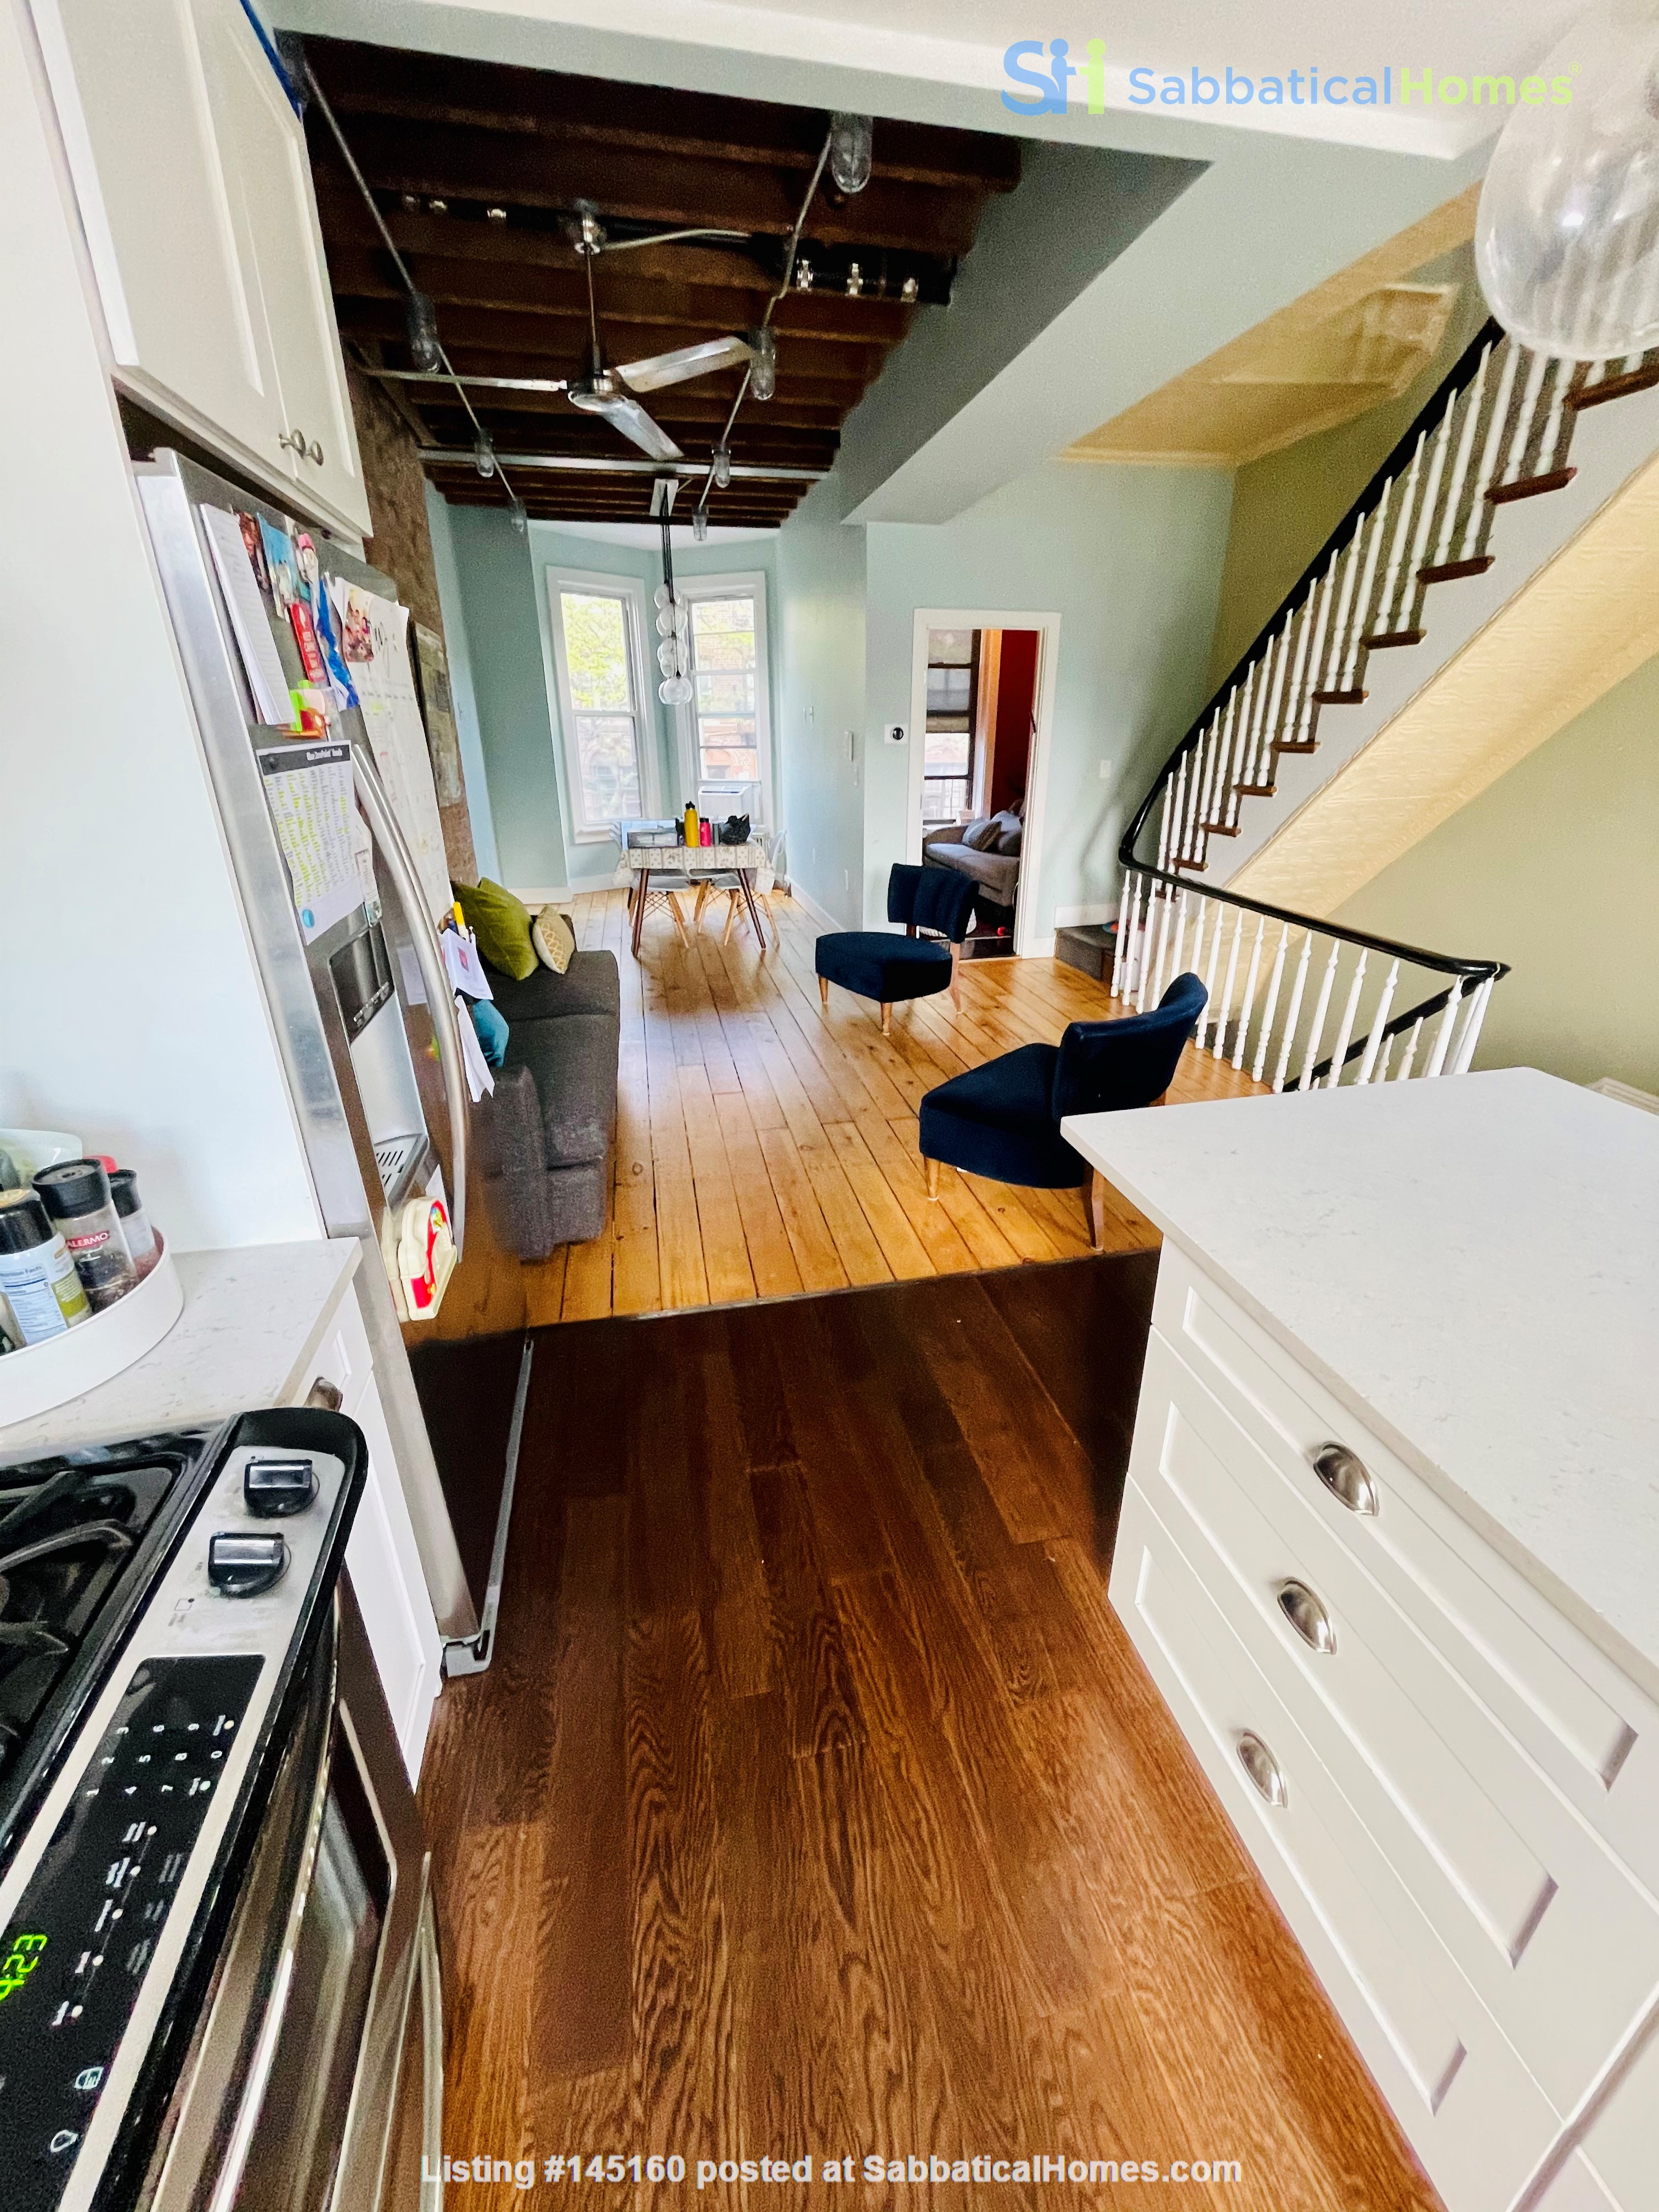 5br - Beautiful *NO FEE* Park Slope Townhouse w Private Yard Home Rental in Kings County, New York, United States 2